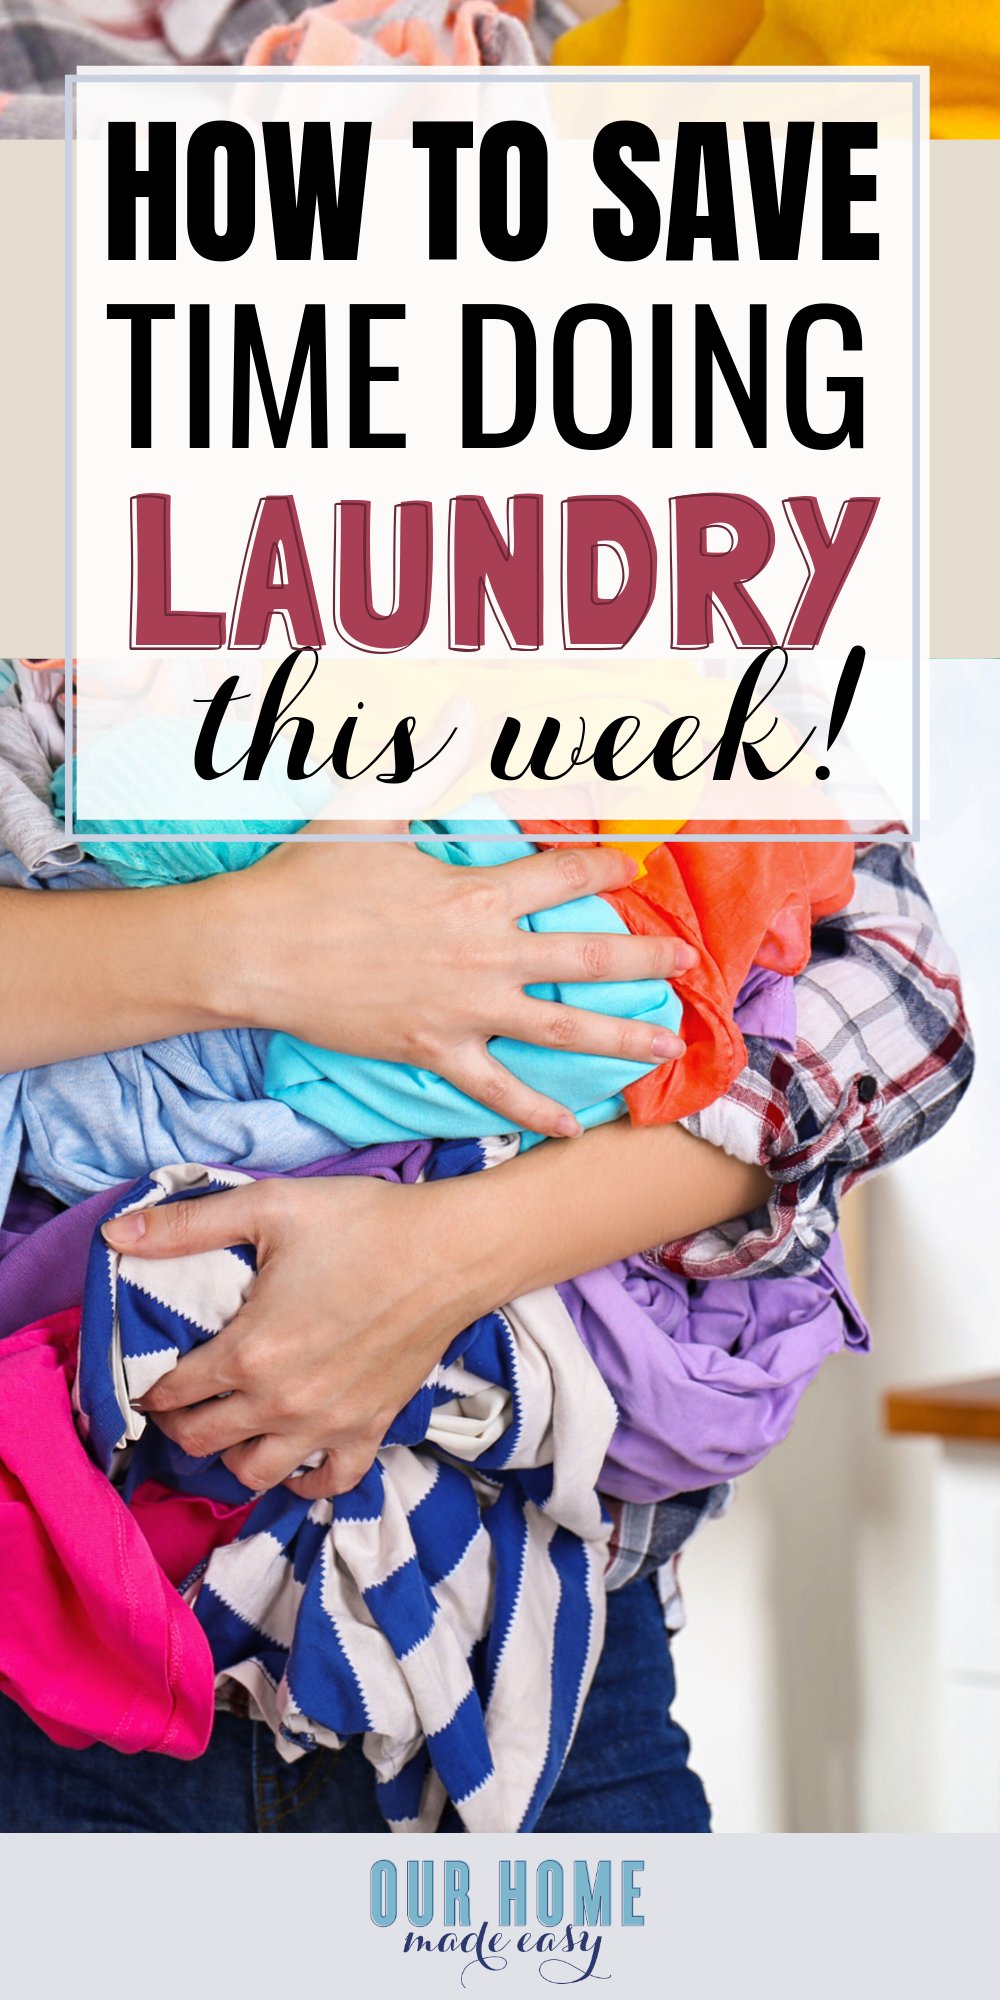 How to save time doing laundry this week: 9 pro-tips to make laundry easier